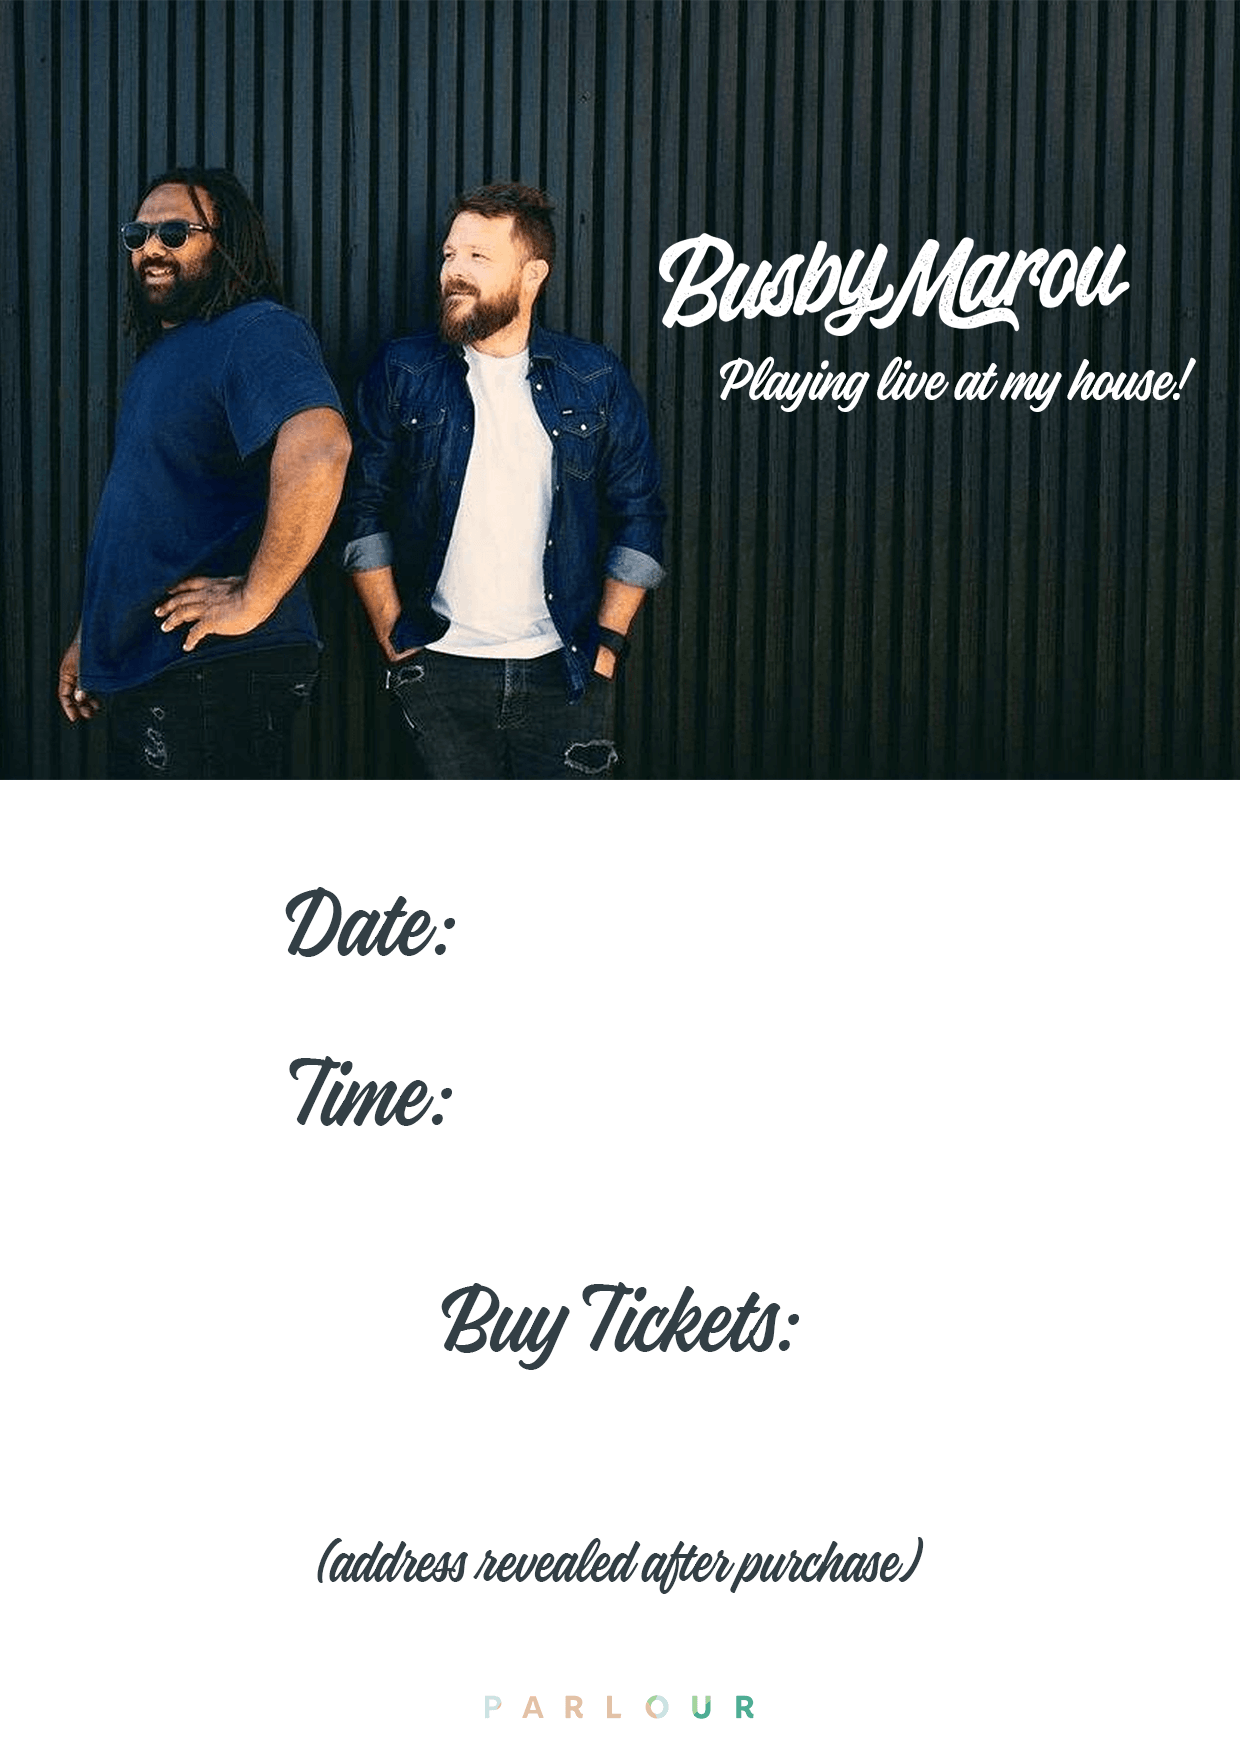 Busby Marou Host Poster.png